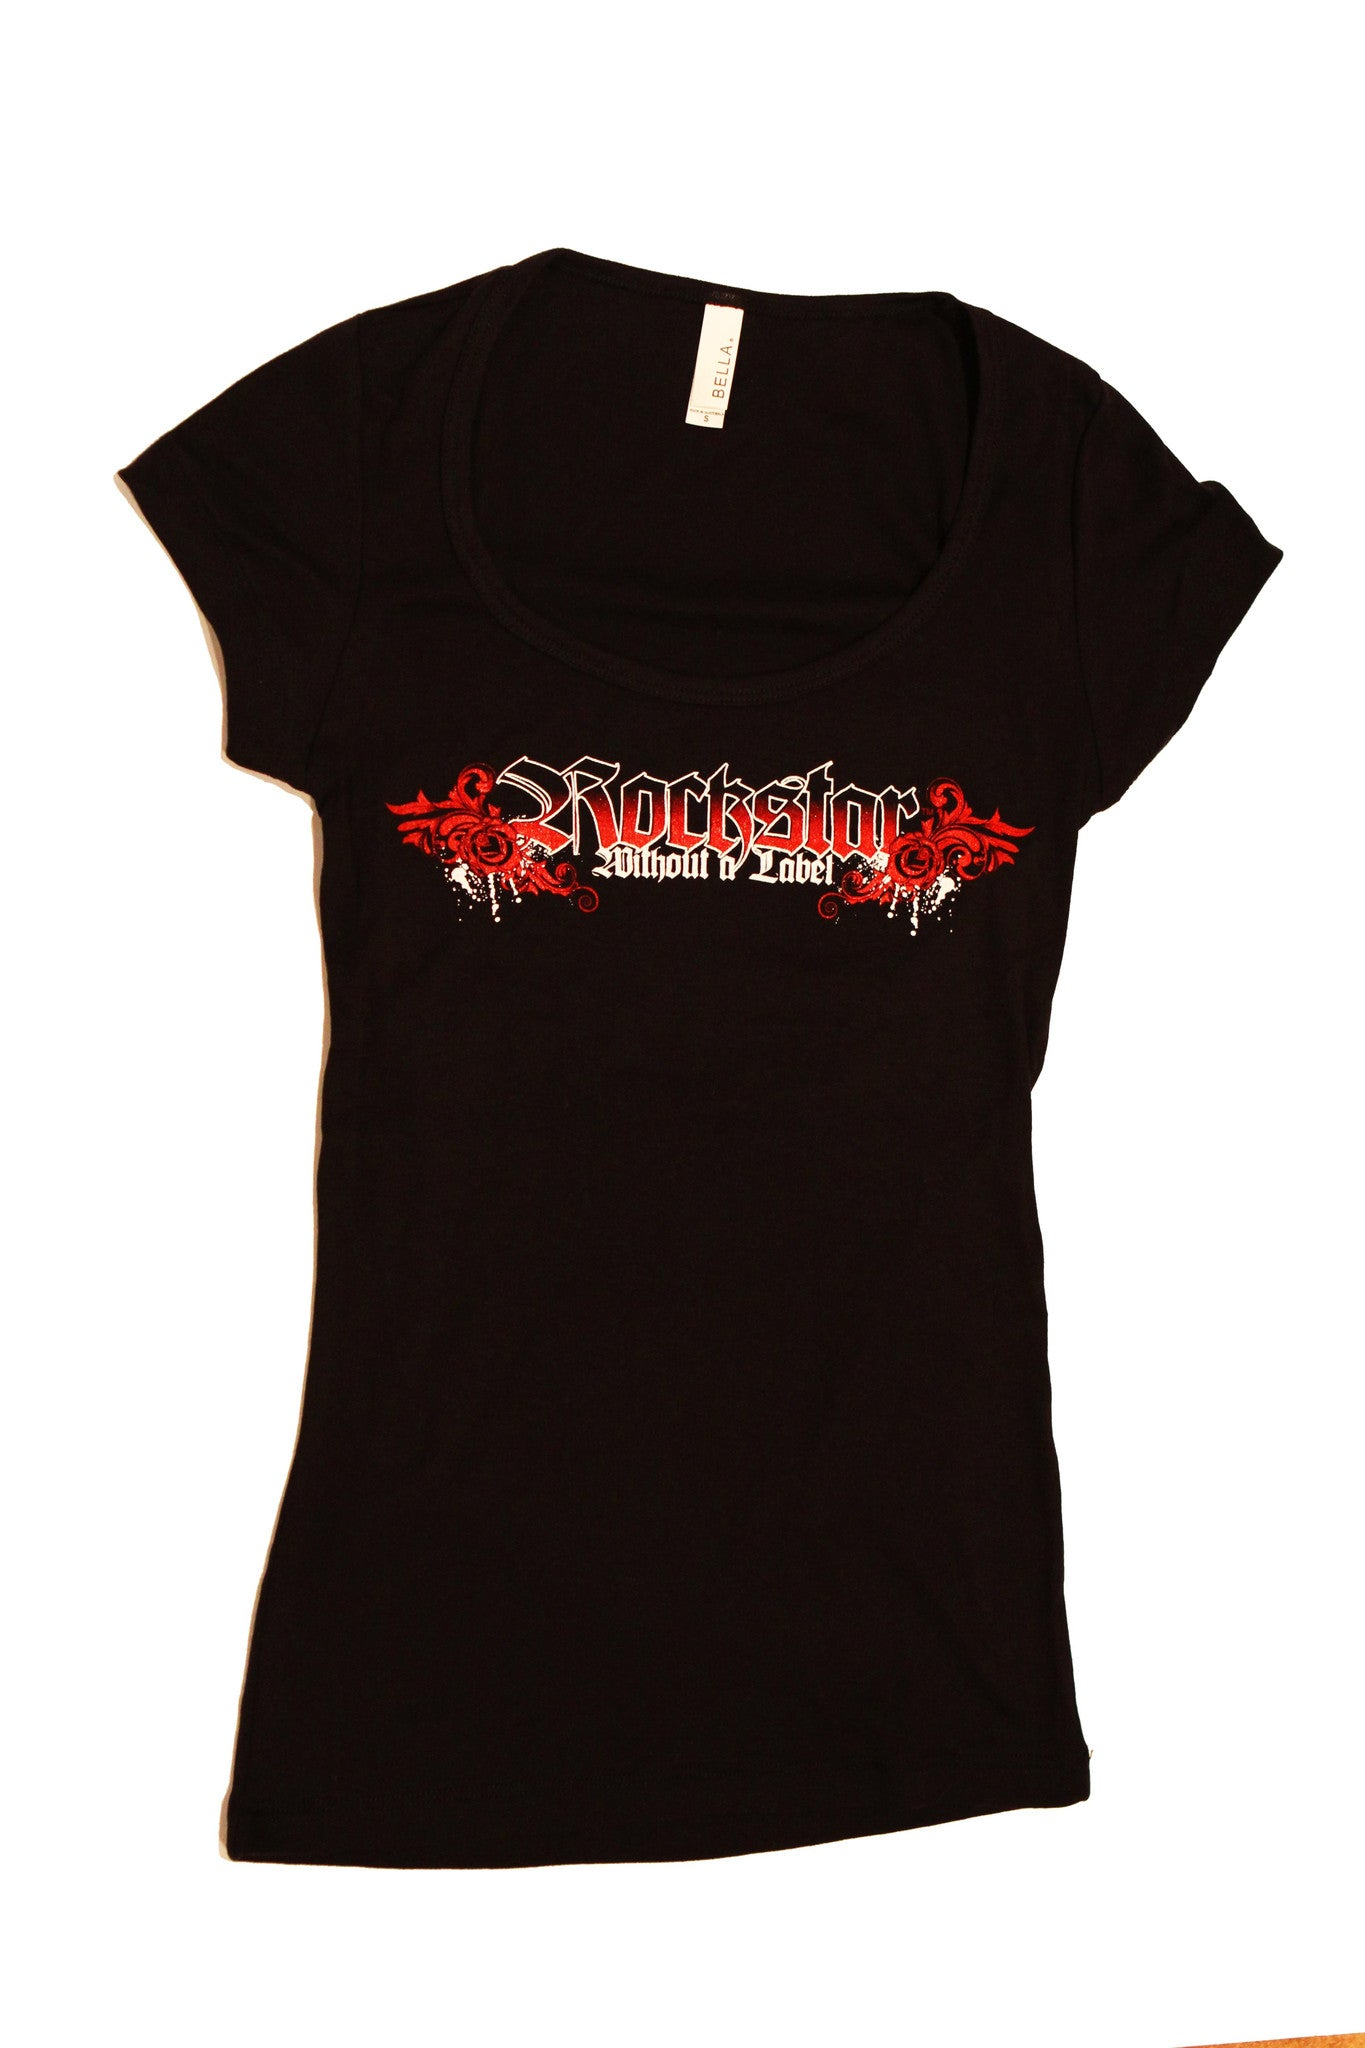 Tank Top Short Sleeve Womens T shirt in Black with Red Rockstar logo